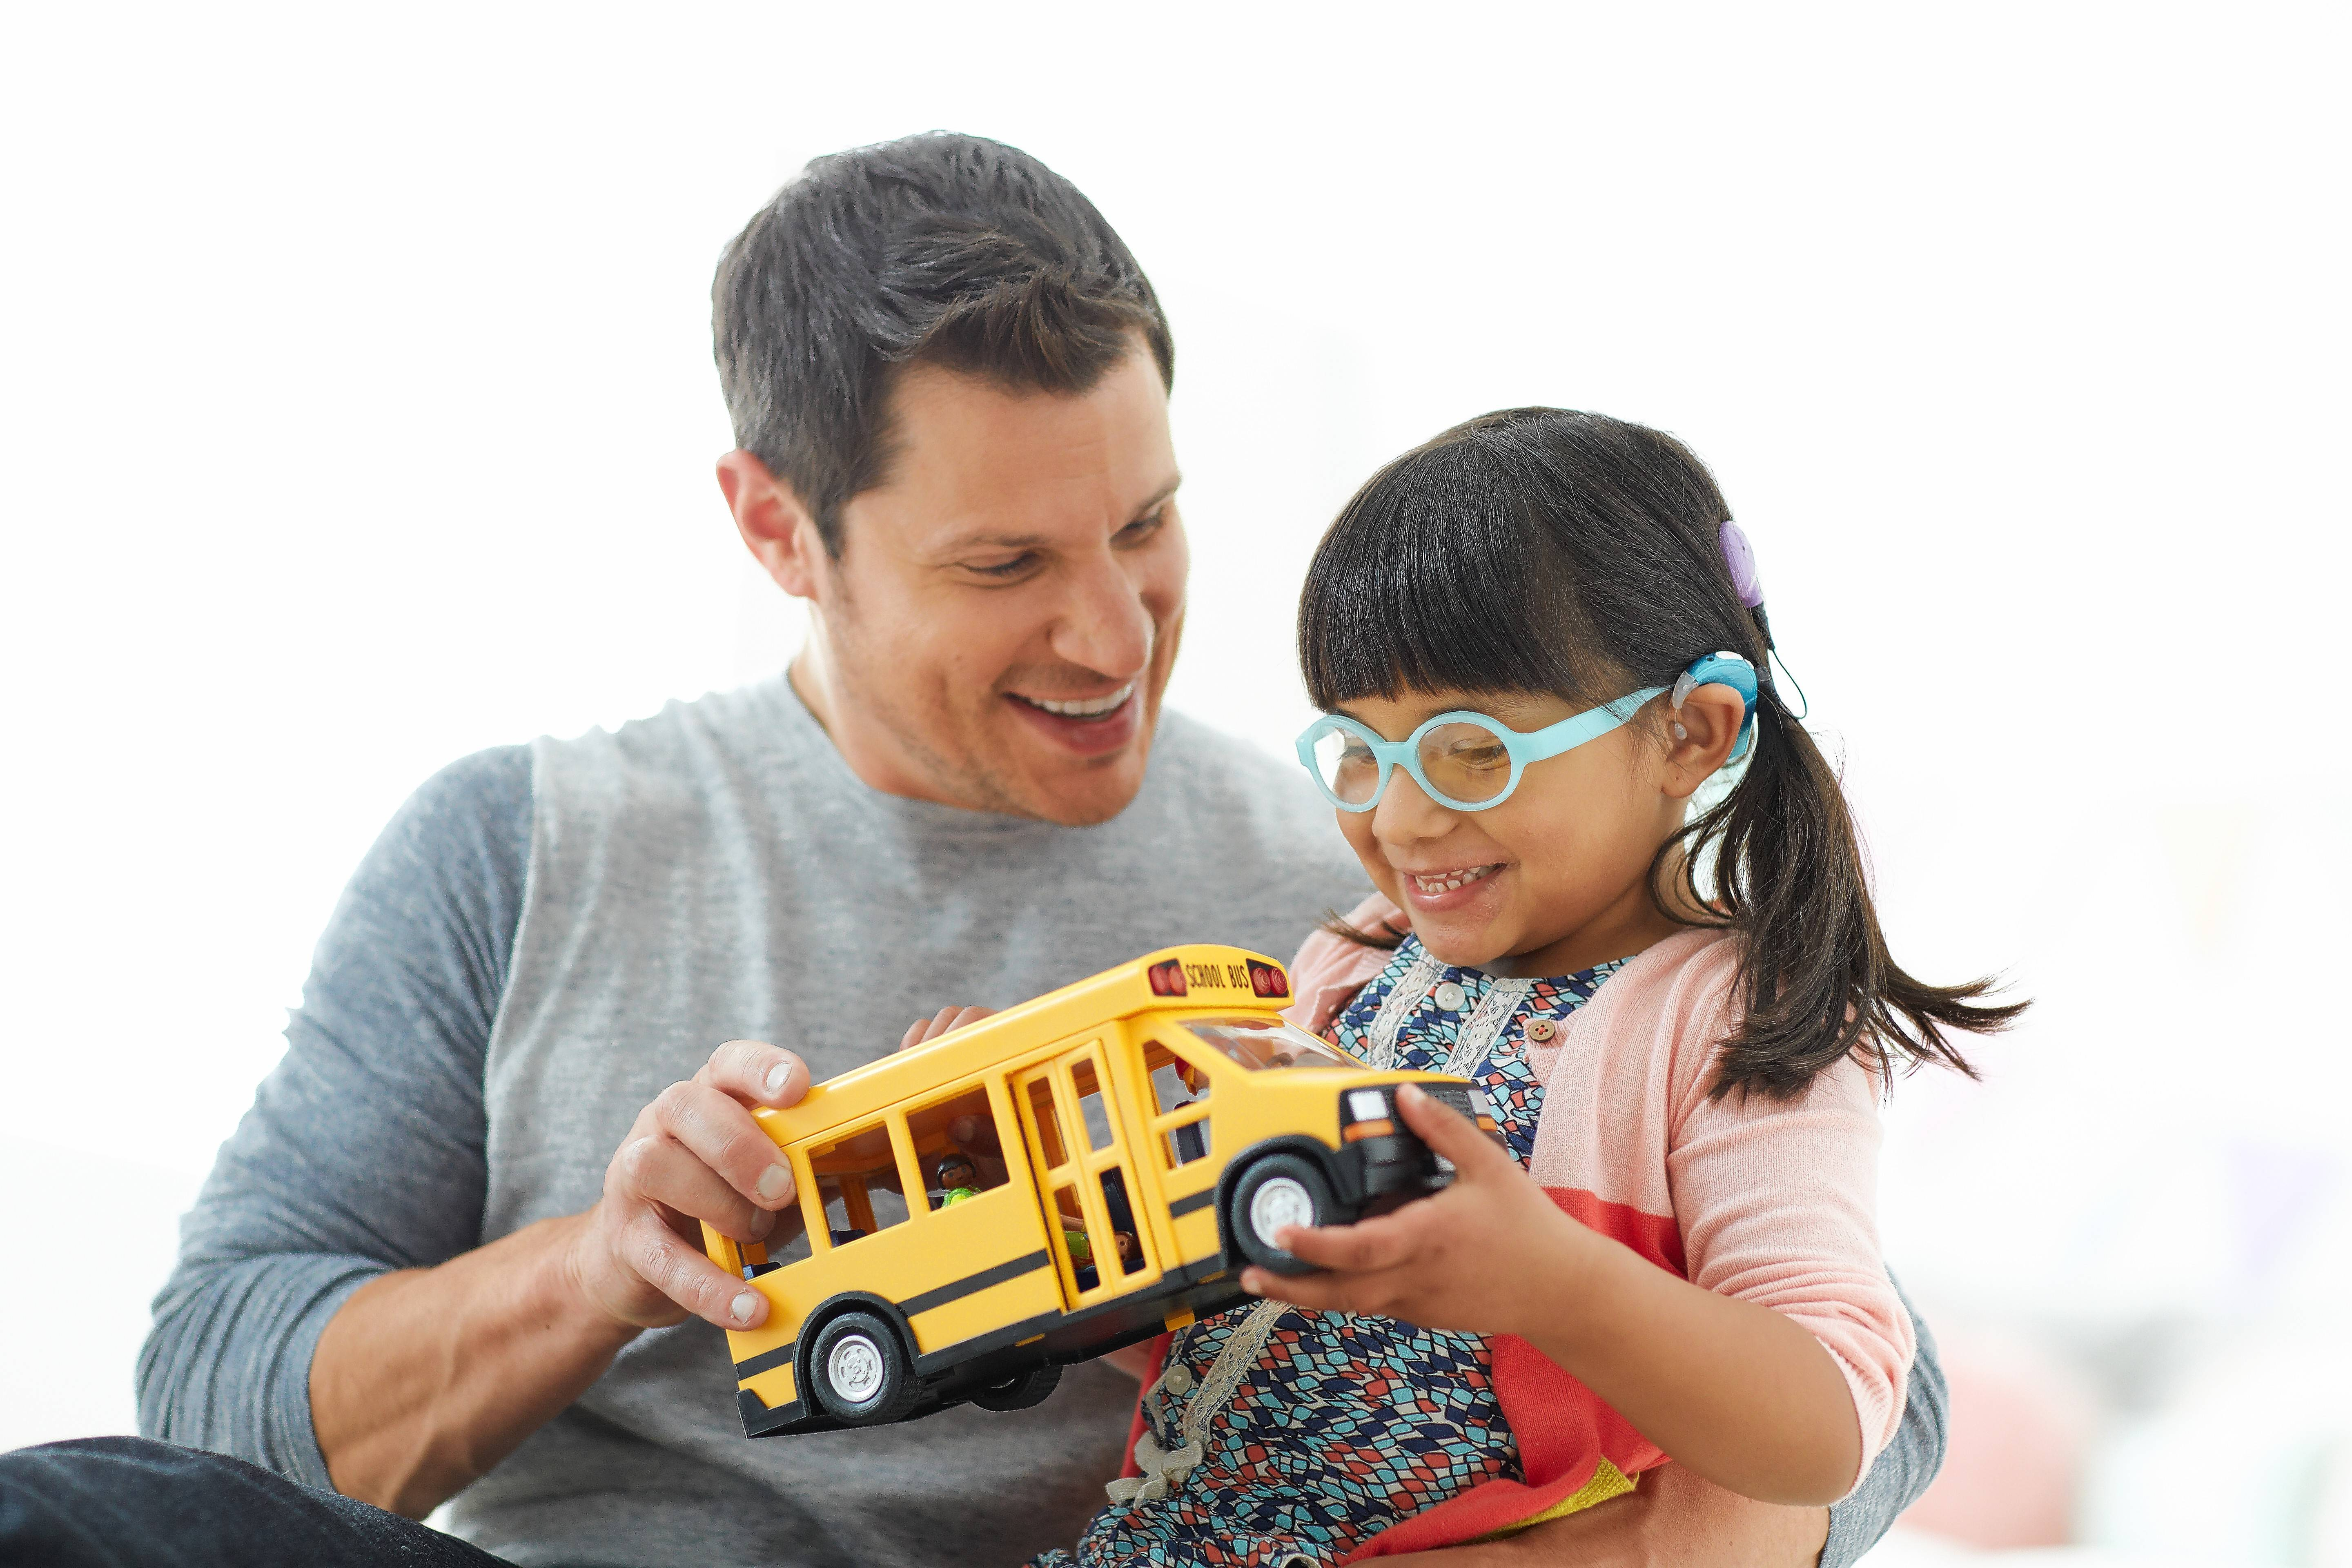 Toy buying made easy for kids of all abilities